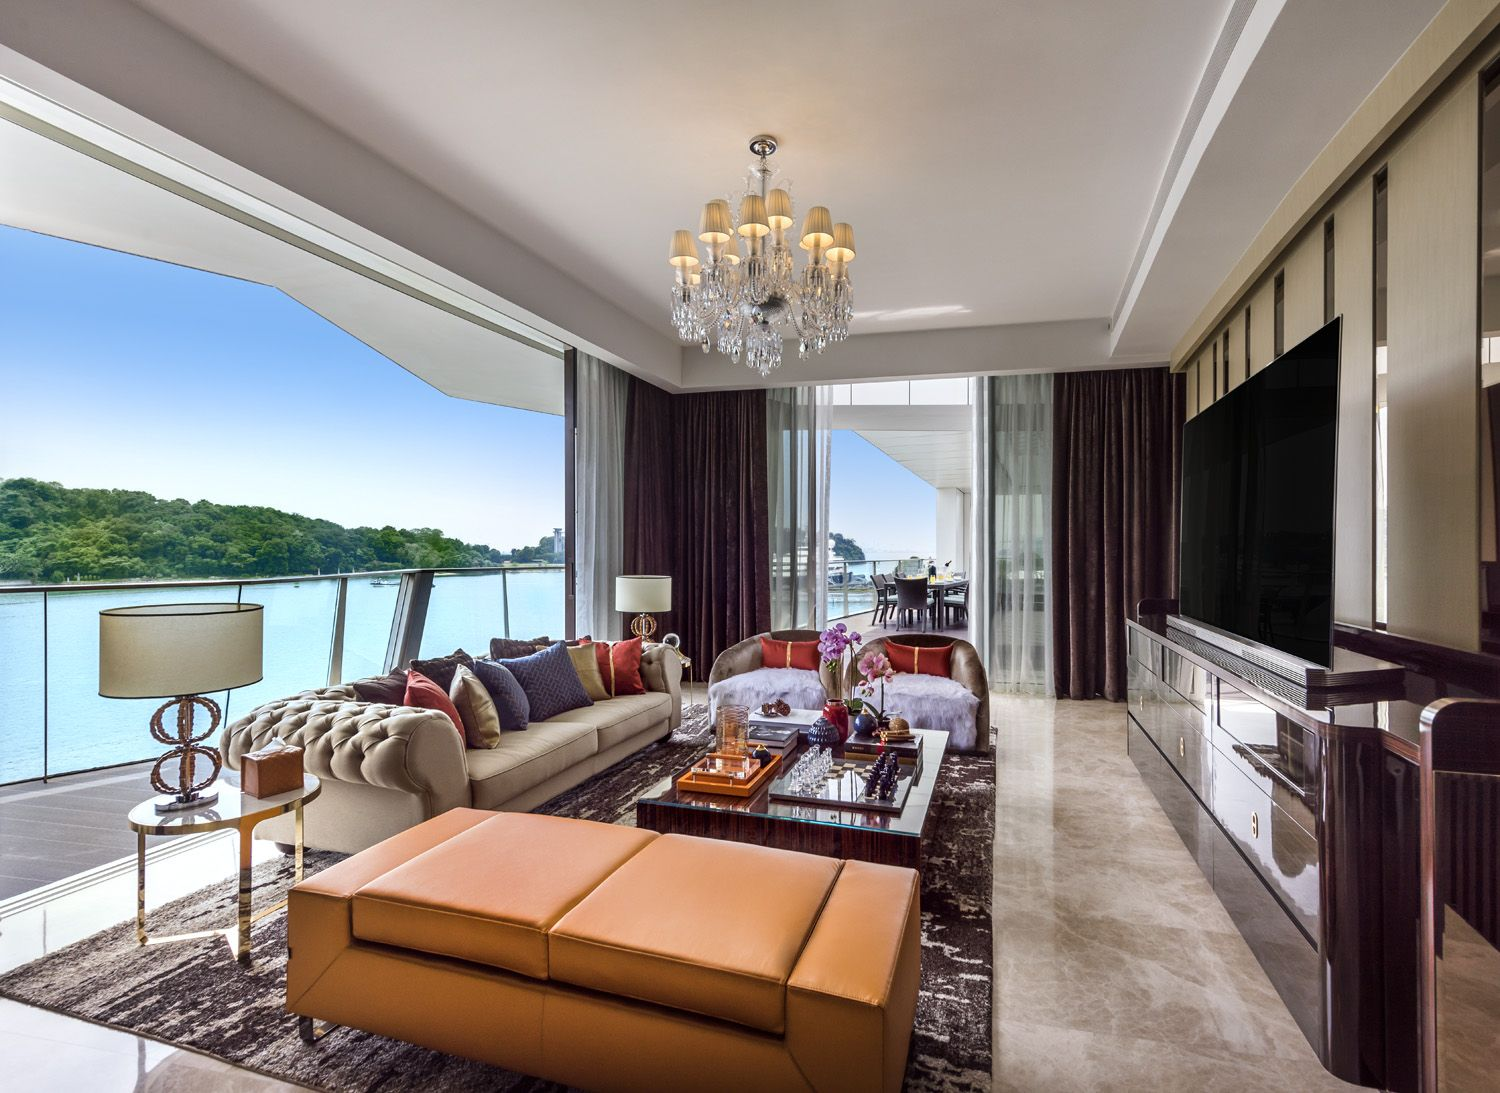 Home Tour: A Yacht-inspired Penthouse With Opulent Details